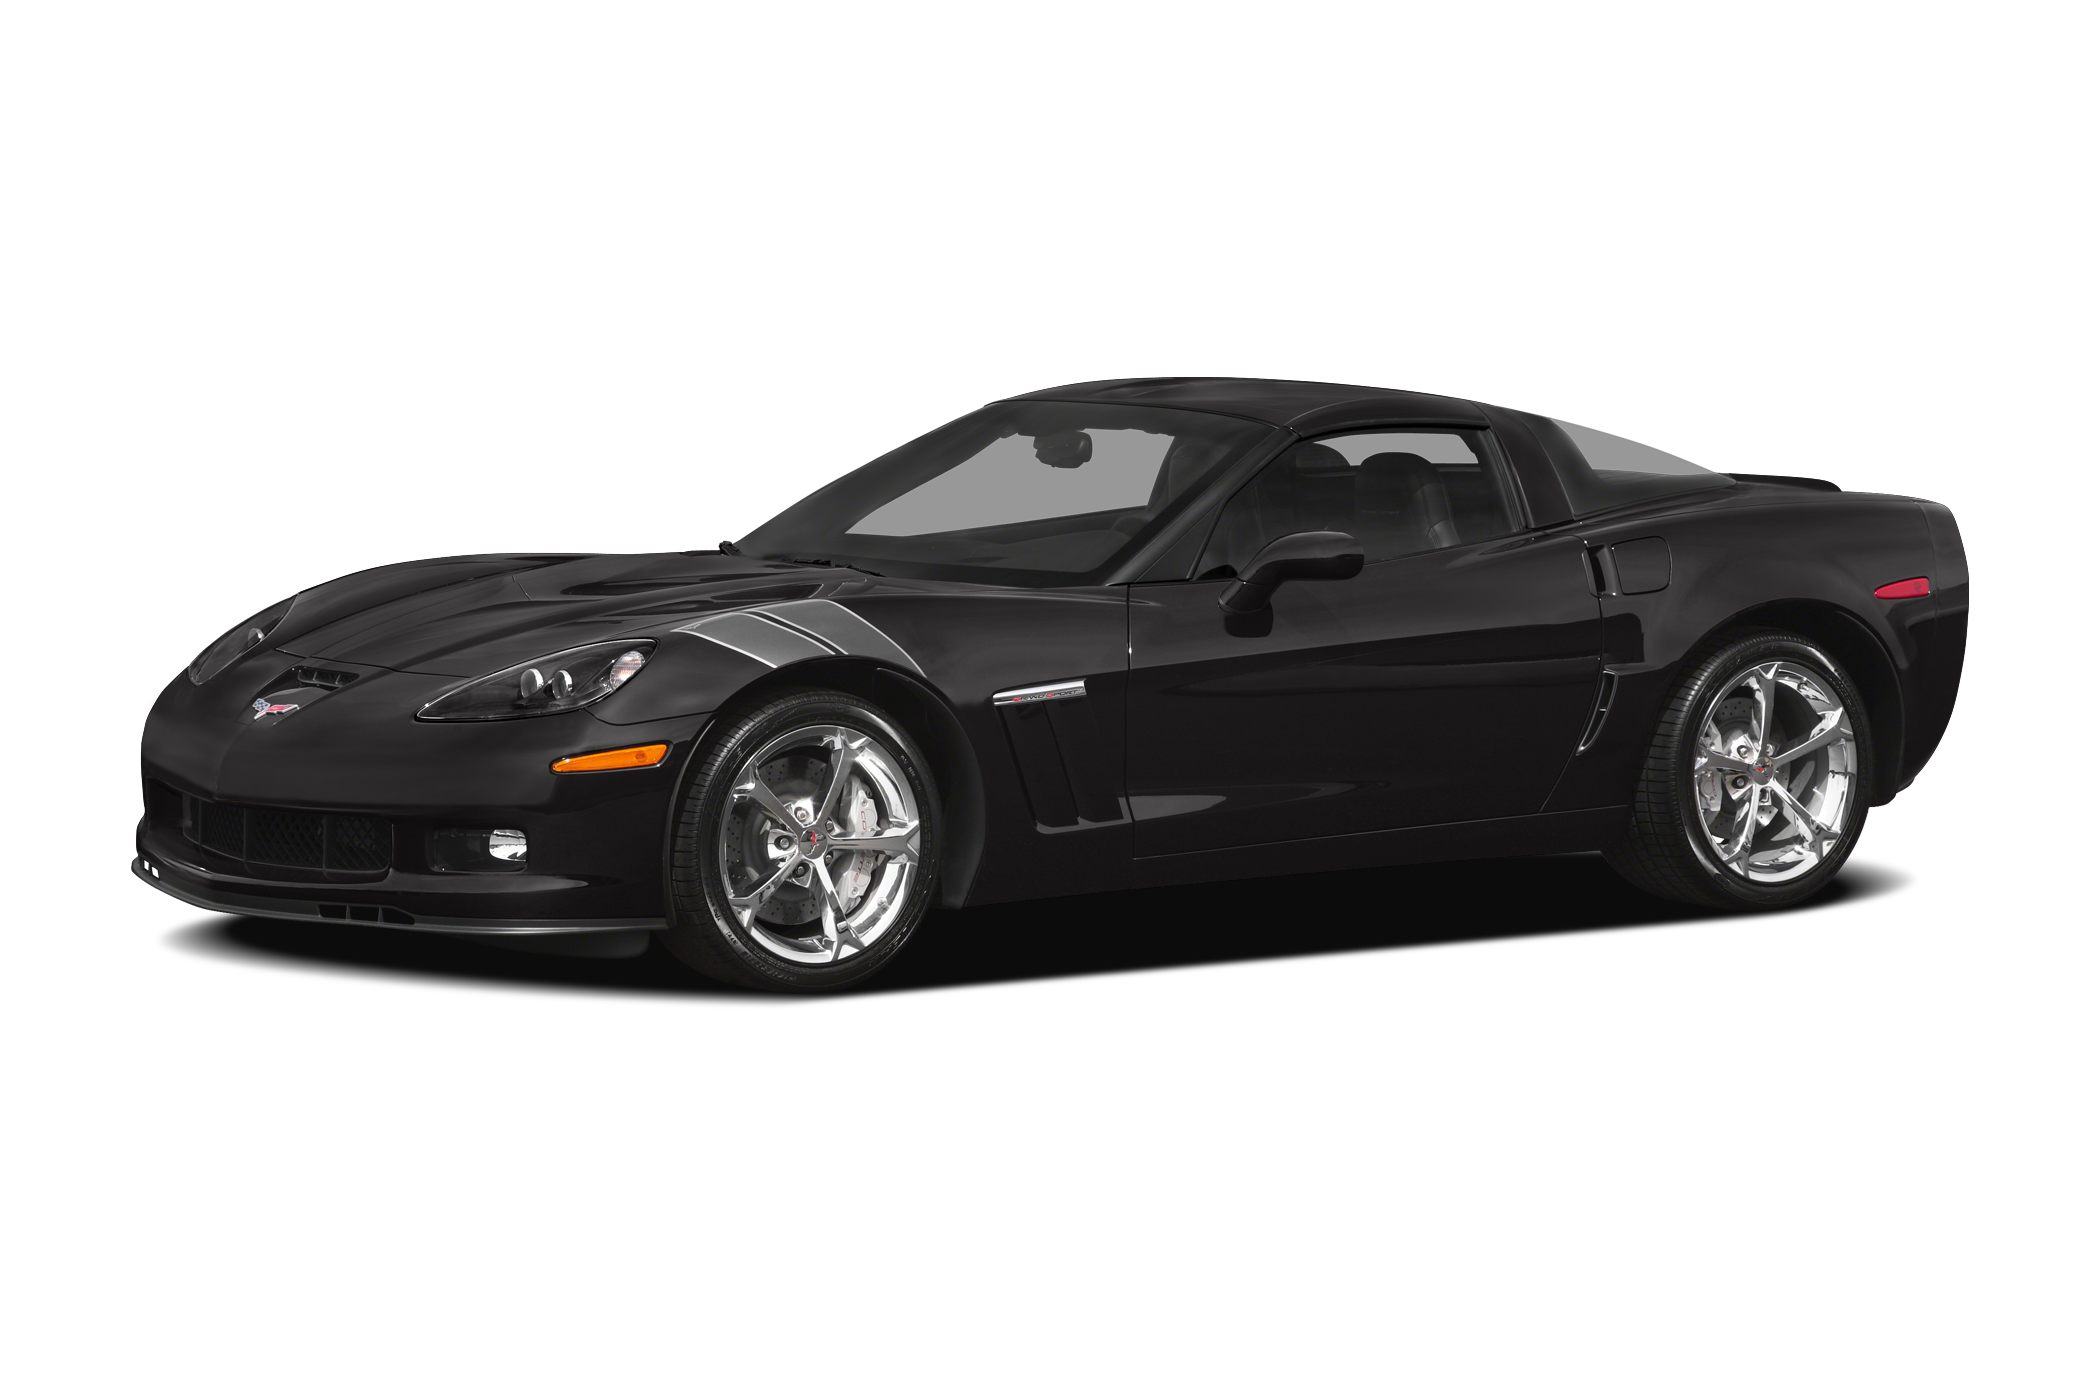 2010 Chevrolet Corvette Grand Sport Convertible for sale in Easley for $46,989 with 34,164 miles.